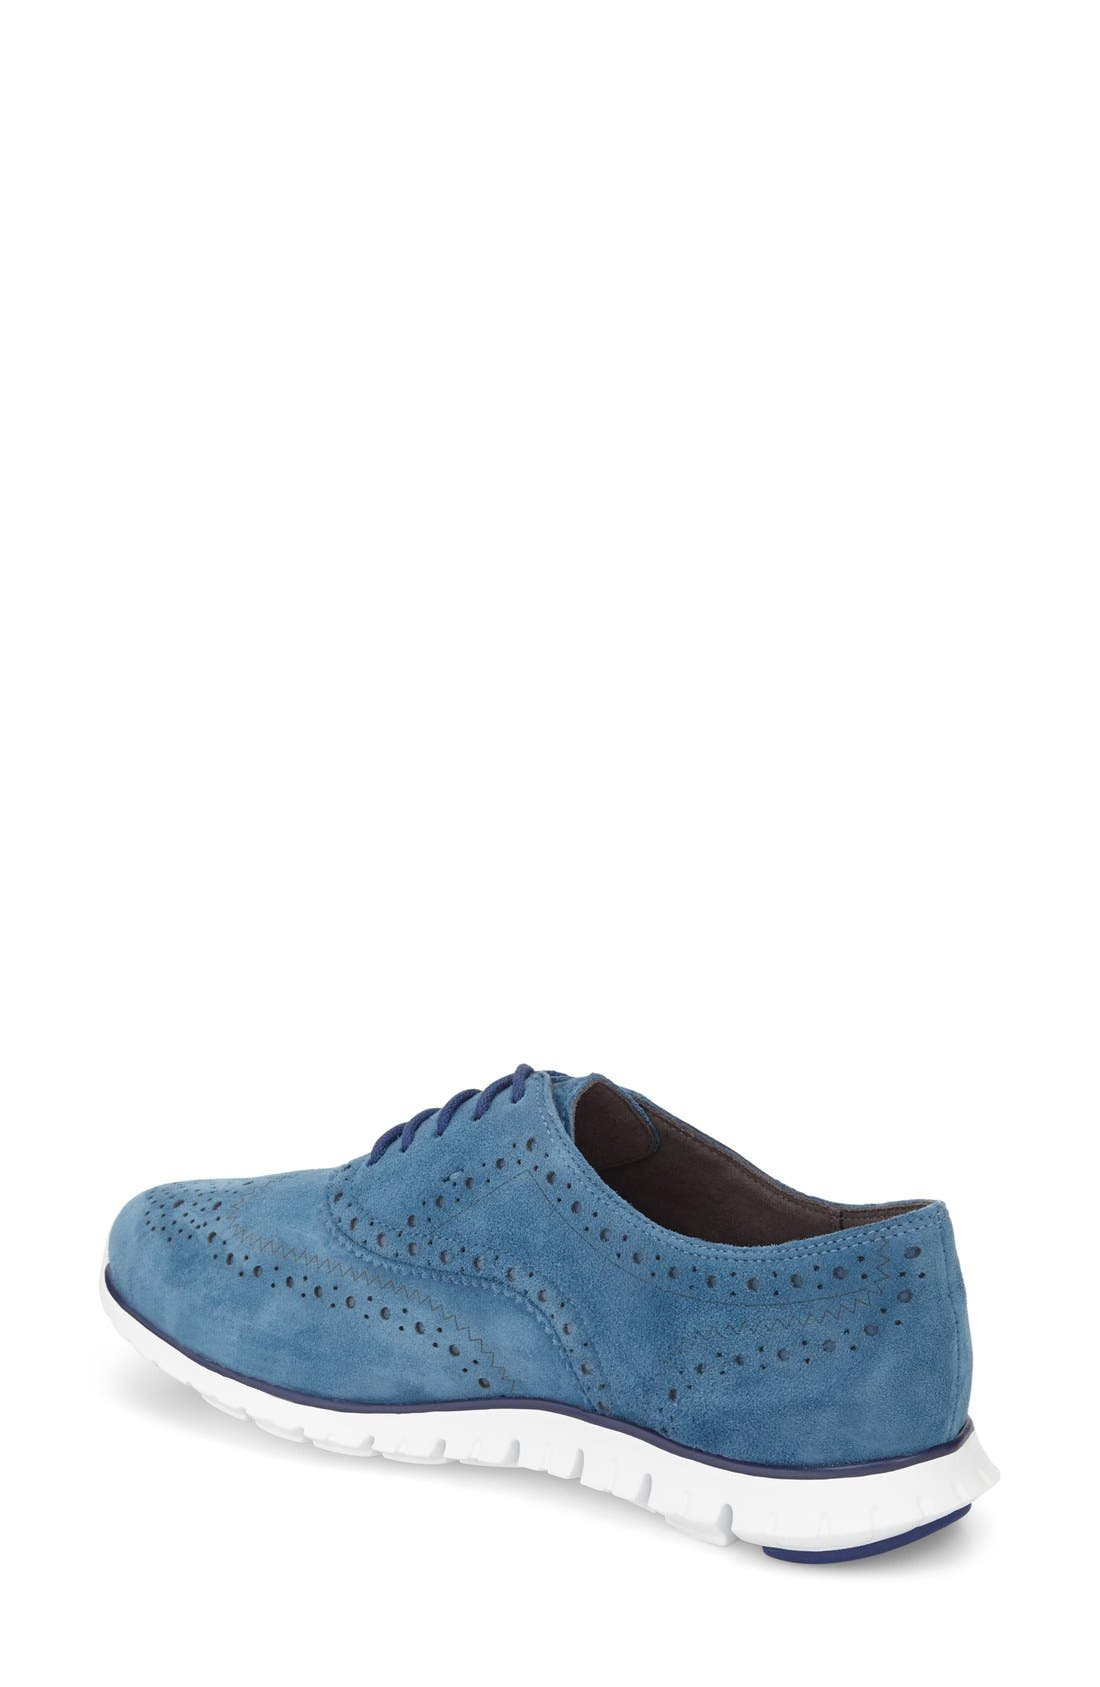 'ZeroGrand' Perforated Wingtip,                             Alternate thumbnail 52, color,